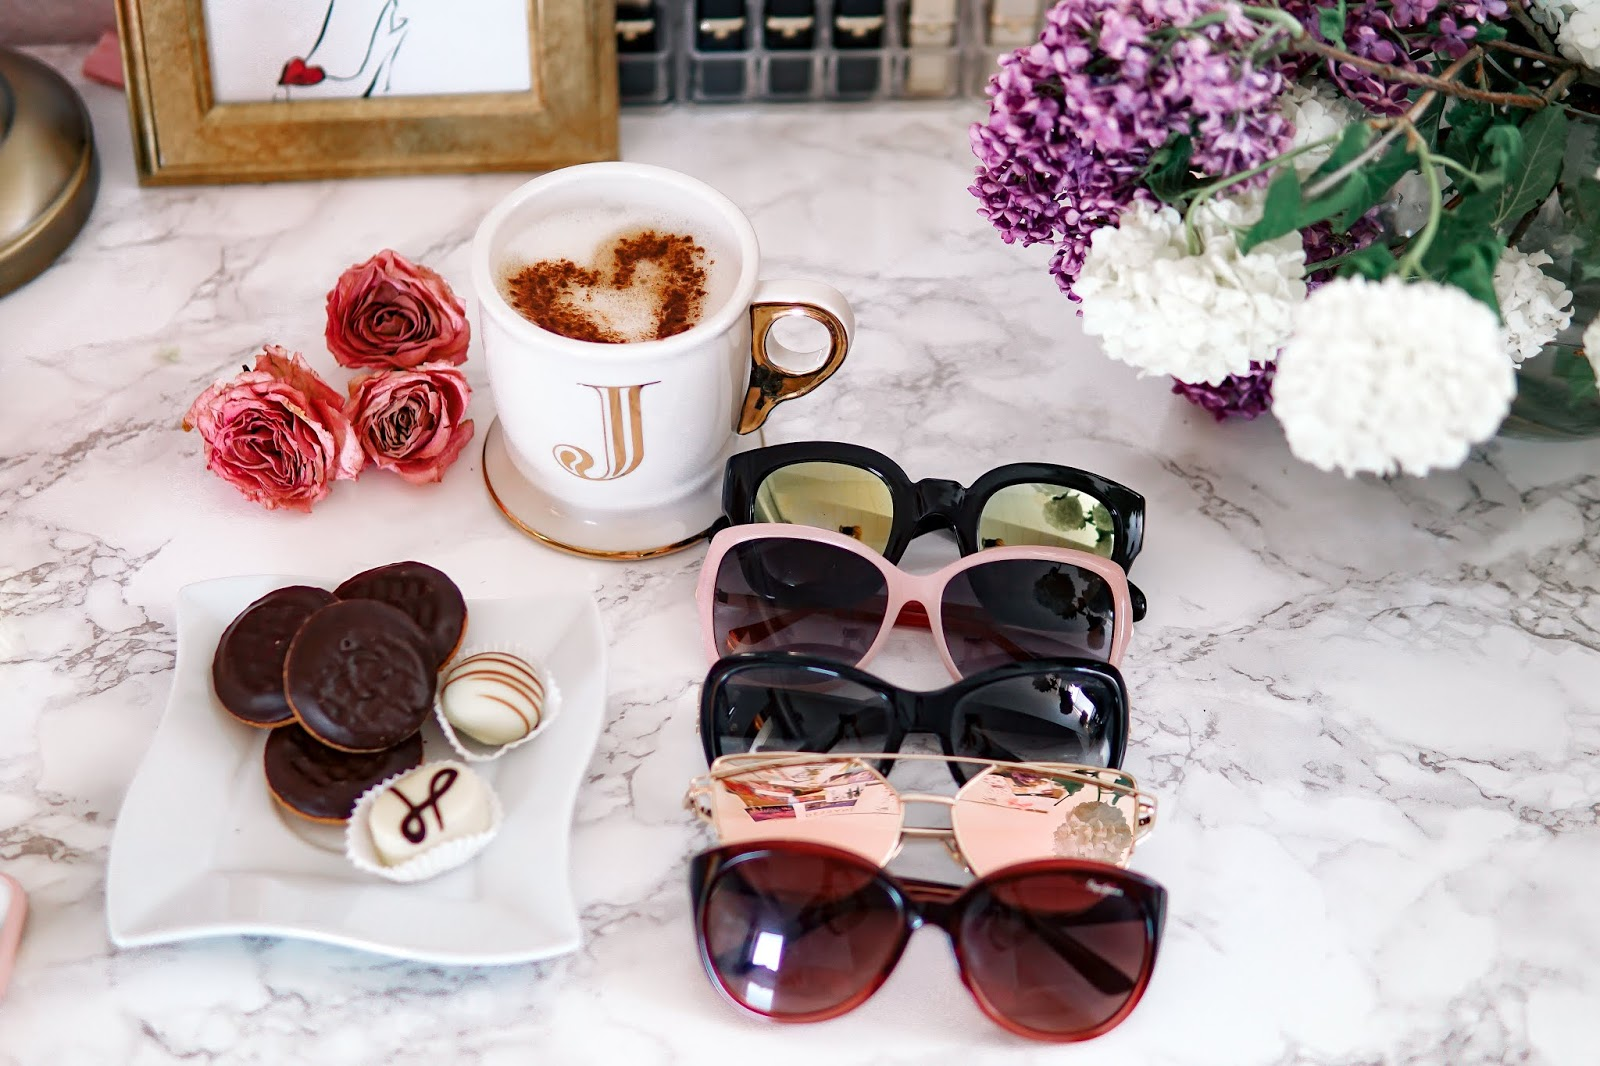 Sonnenbrille-Sonnenberillen-musthaves-whats-in-my-bag-fashionblogger-fashionstylebyjohanna